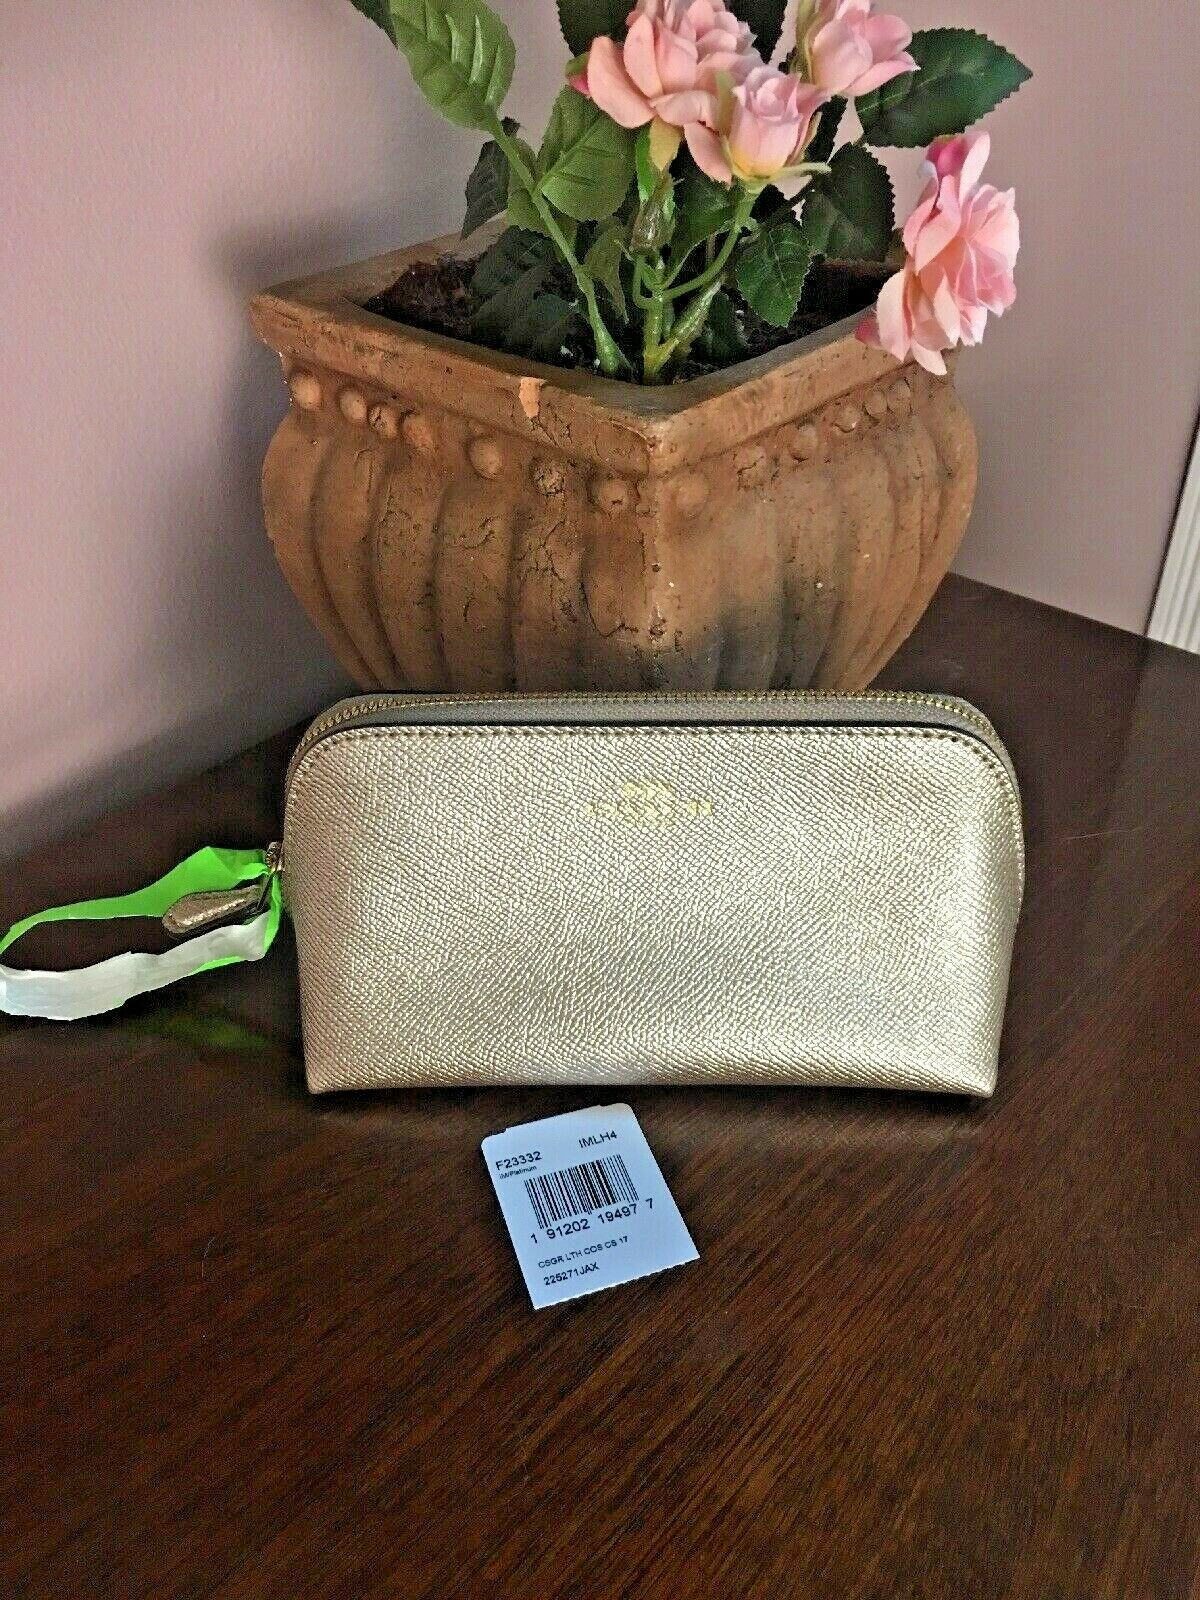 Primary image for Coach Cosmetic Bag 17 Crossgrain Leather F23332 Platinum Gold  M6